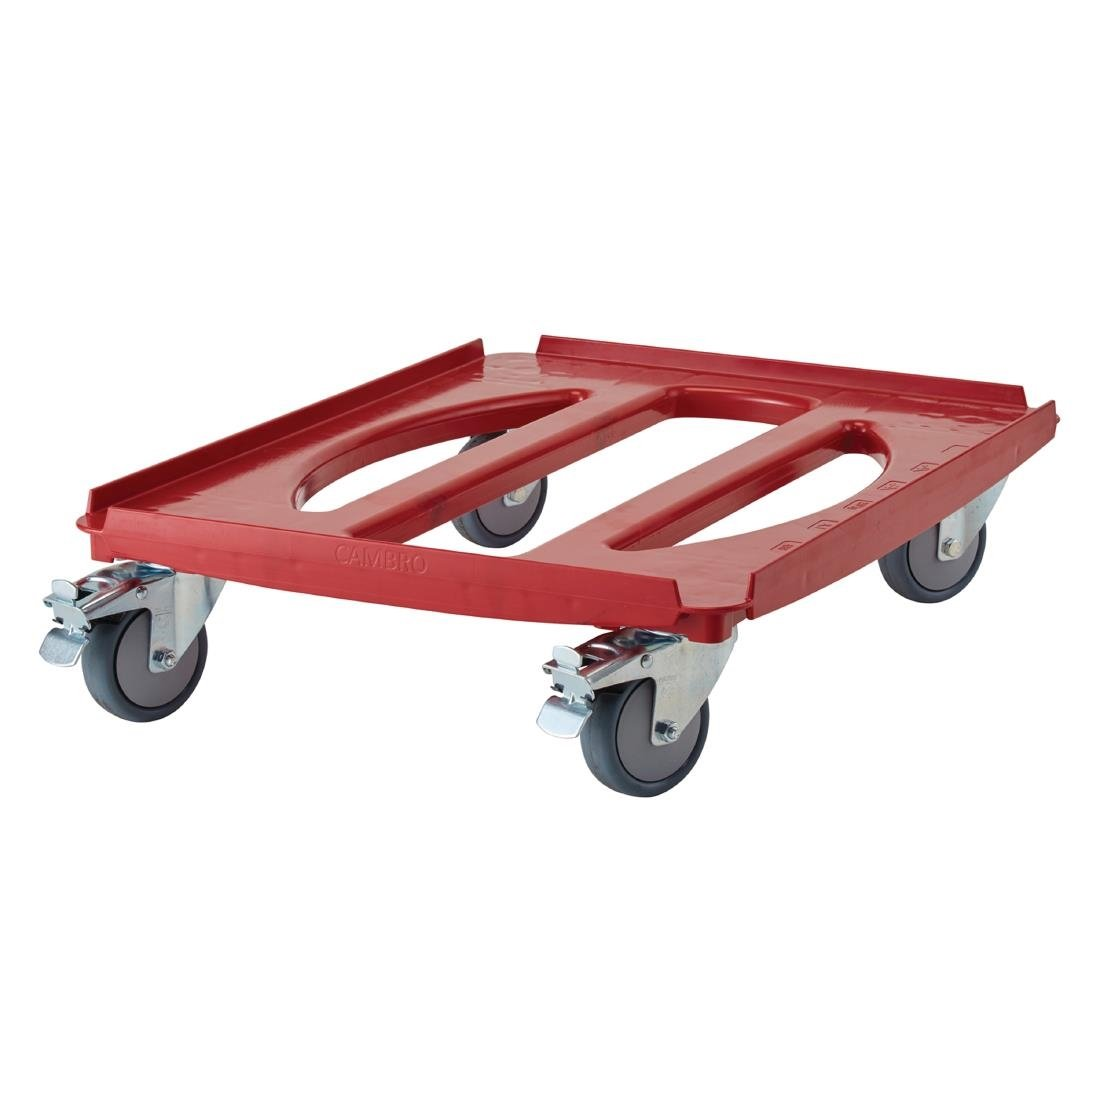 Image of Cambro Camdolly for Food Carriers